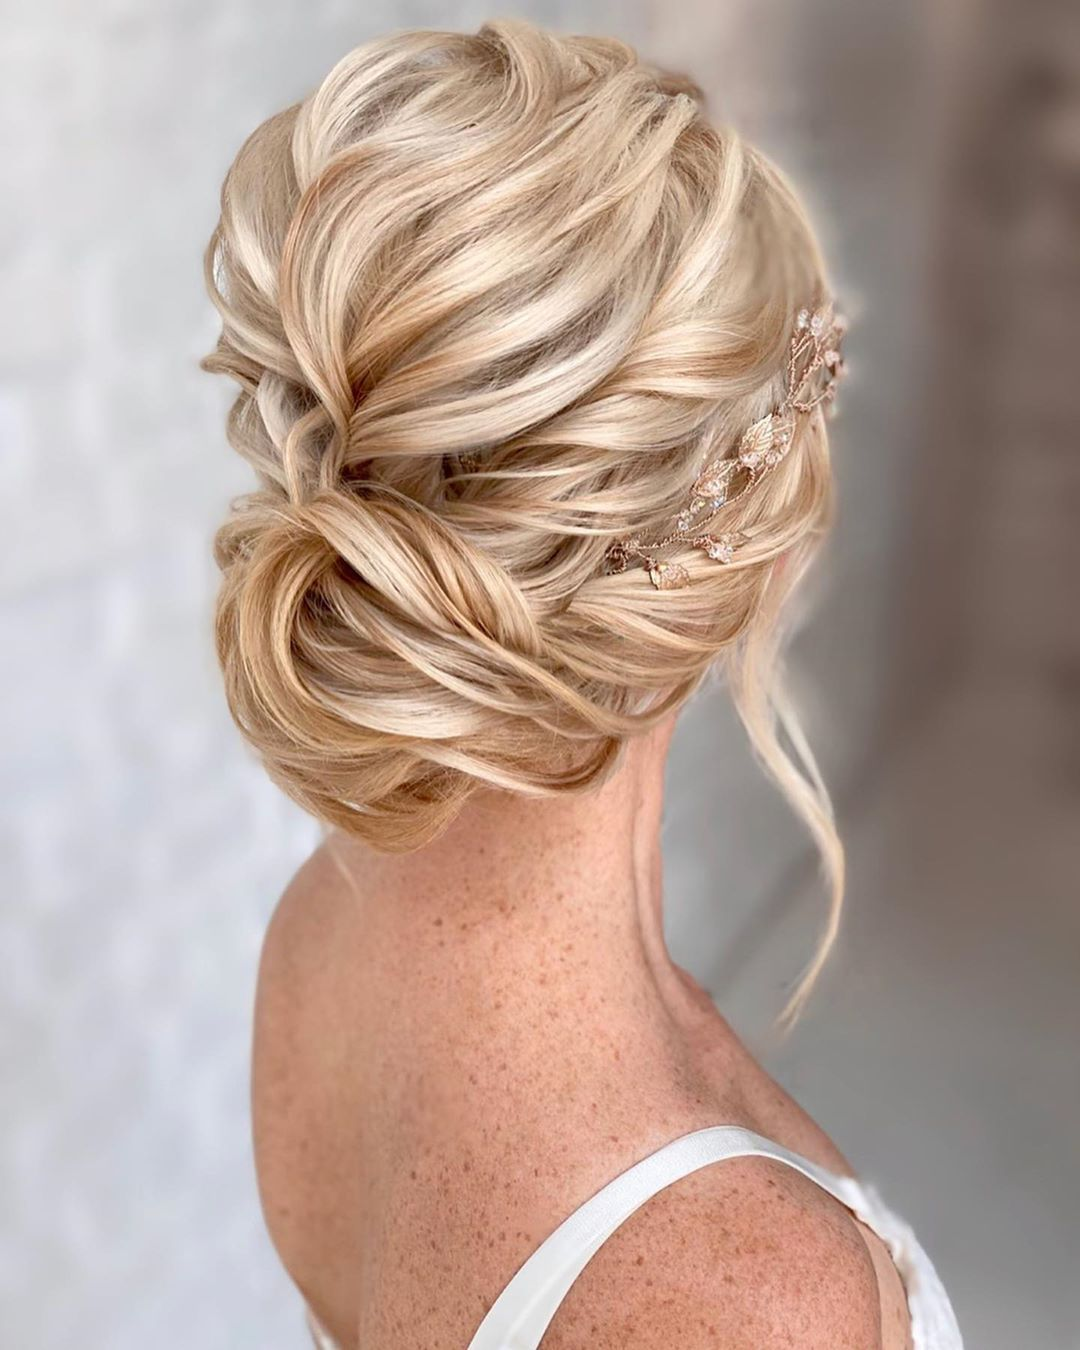 Kasia Fortuna On Instagram I M In New Zealand With Kristinagasperasacademy Teaching A Group Of Pro Hai In 2020 Beautiful Bridal Hair Queen Hair Hair Extensions Best